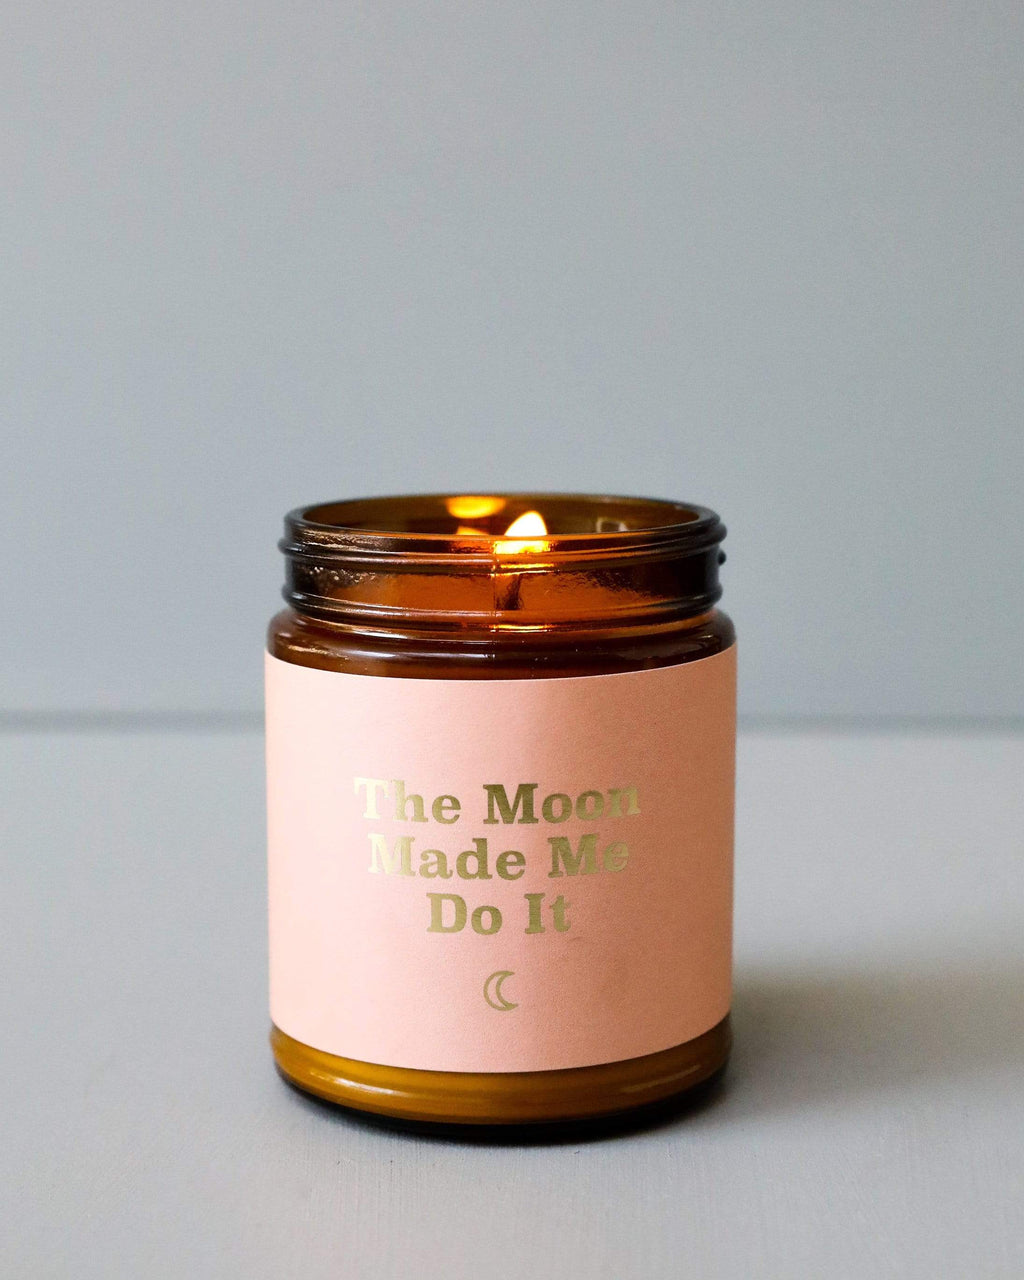 The Moon Made Me Do It - Mantra Candle